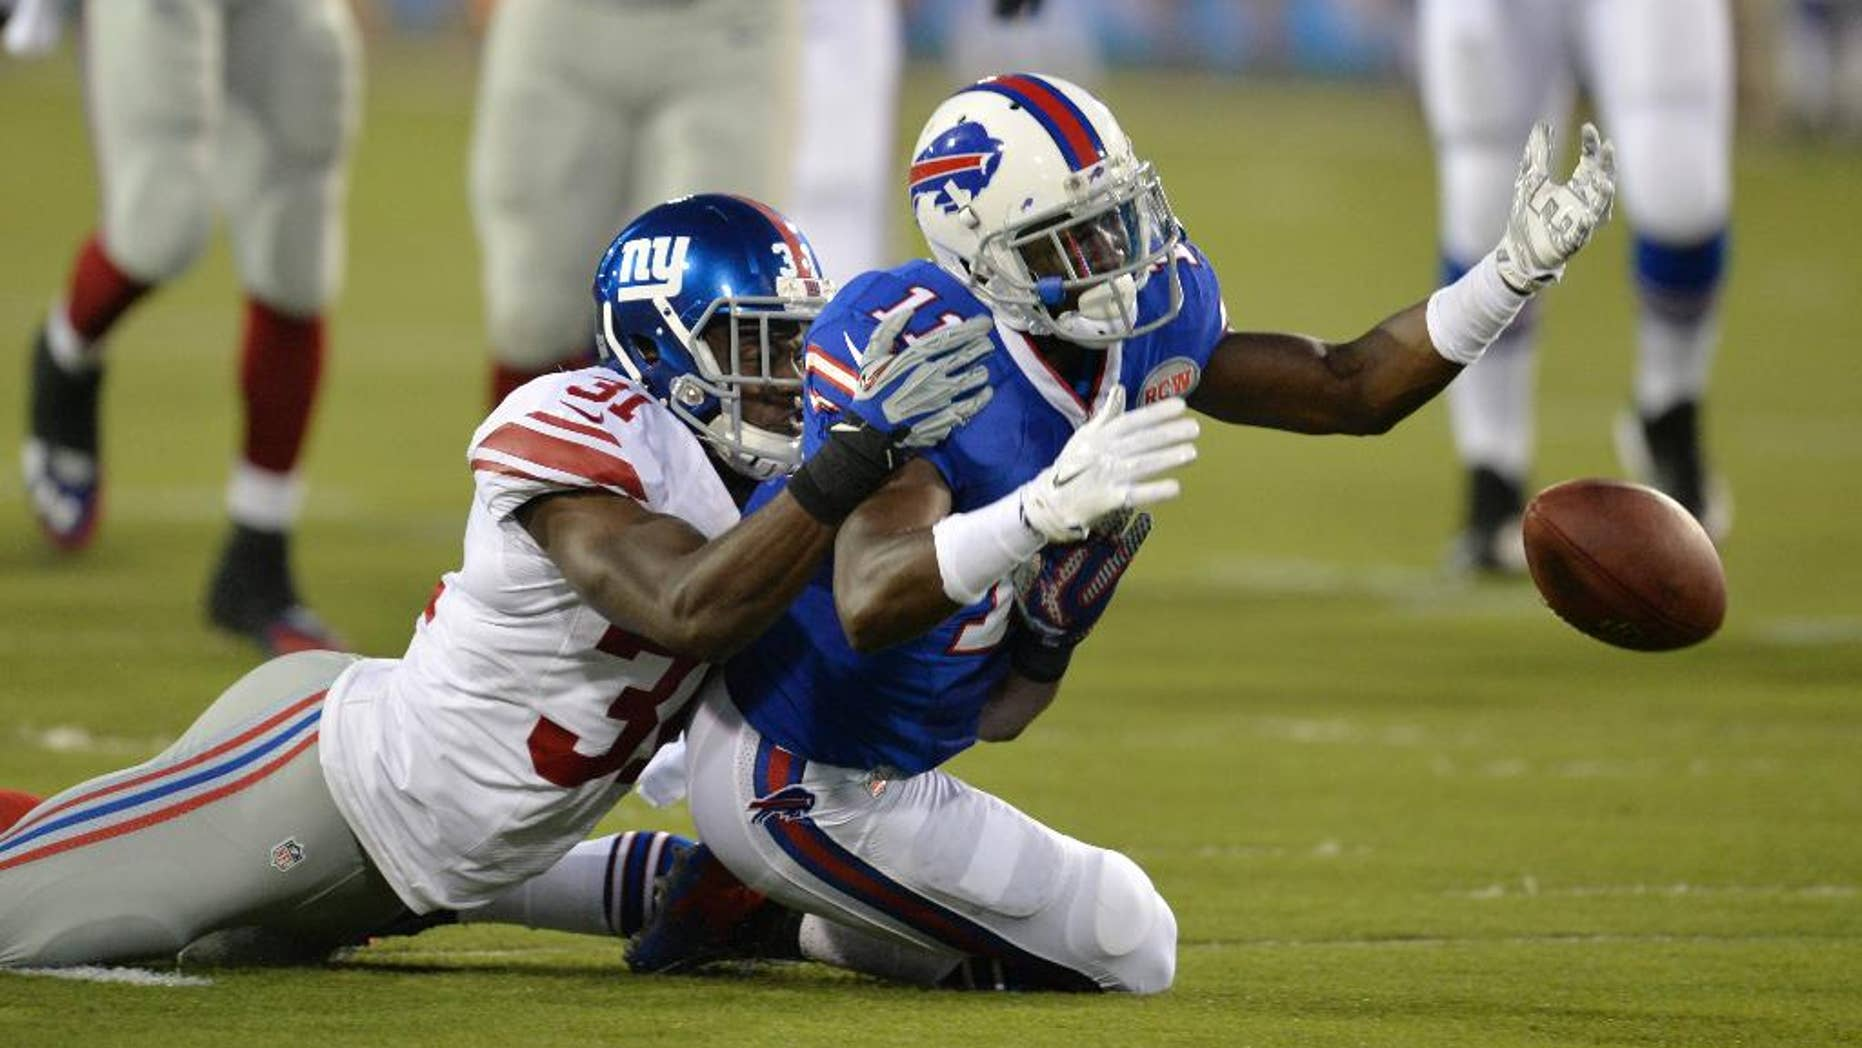 Buffalo Bills wide receiver T.J. Graham (11) can't reach the ball on a pass under pressure from New York Giants cornerback Zack Bowman (31) in the second quarter of the Pro Football Hall of Fame exhibition NFL football game Sunday, Aug. 3, 2014, in Canton, Ohio. (AP Photo/David Richard)